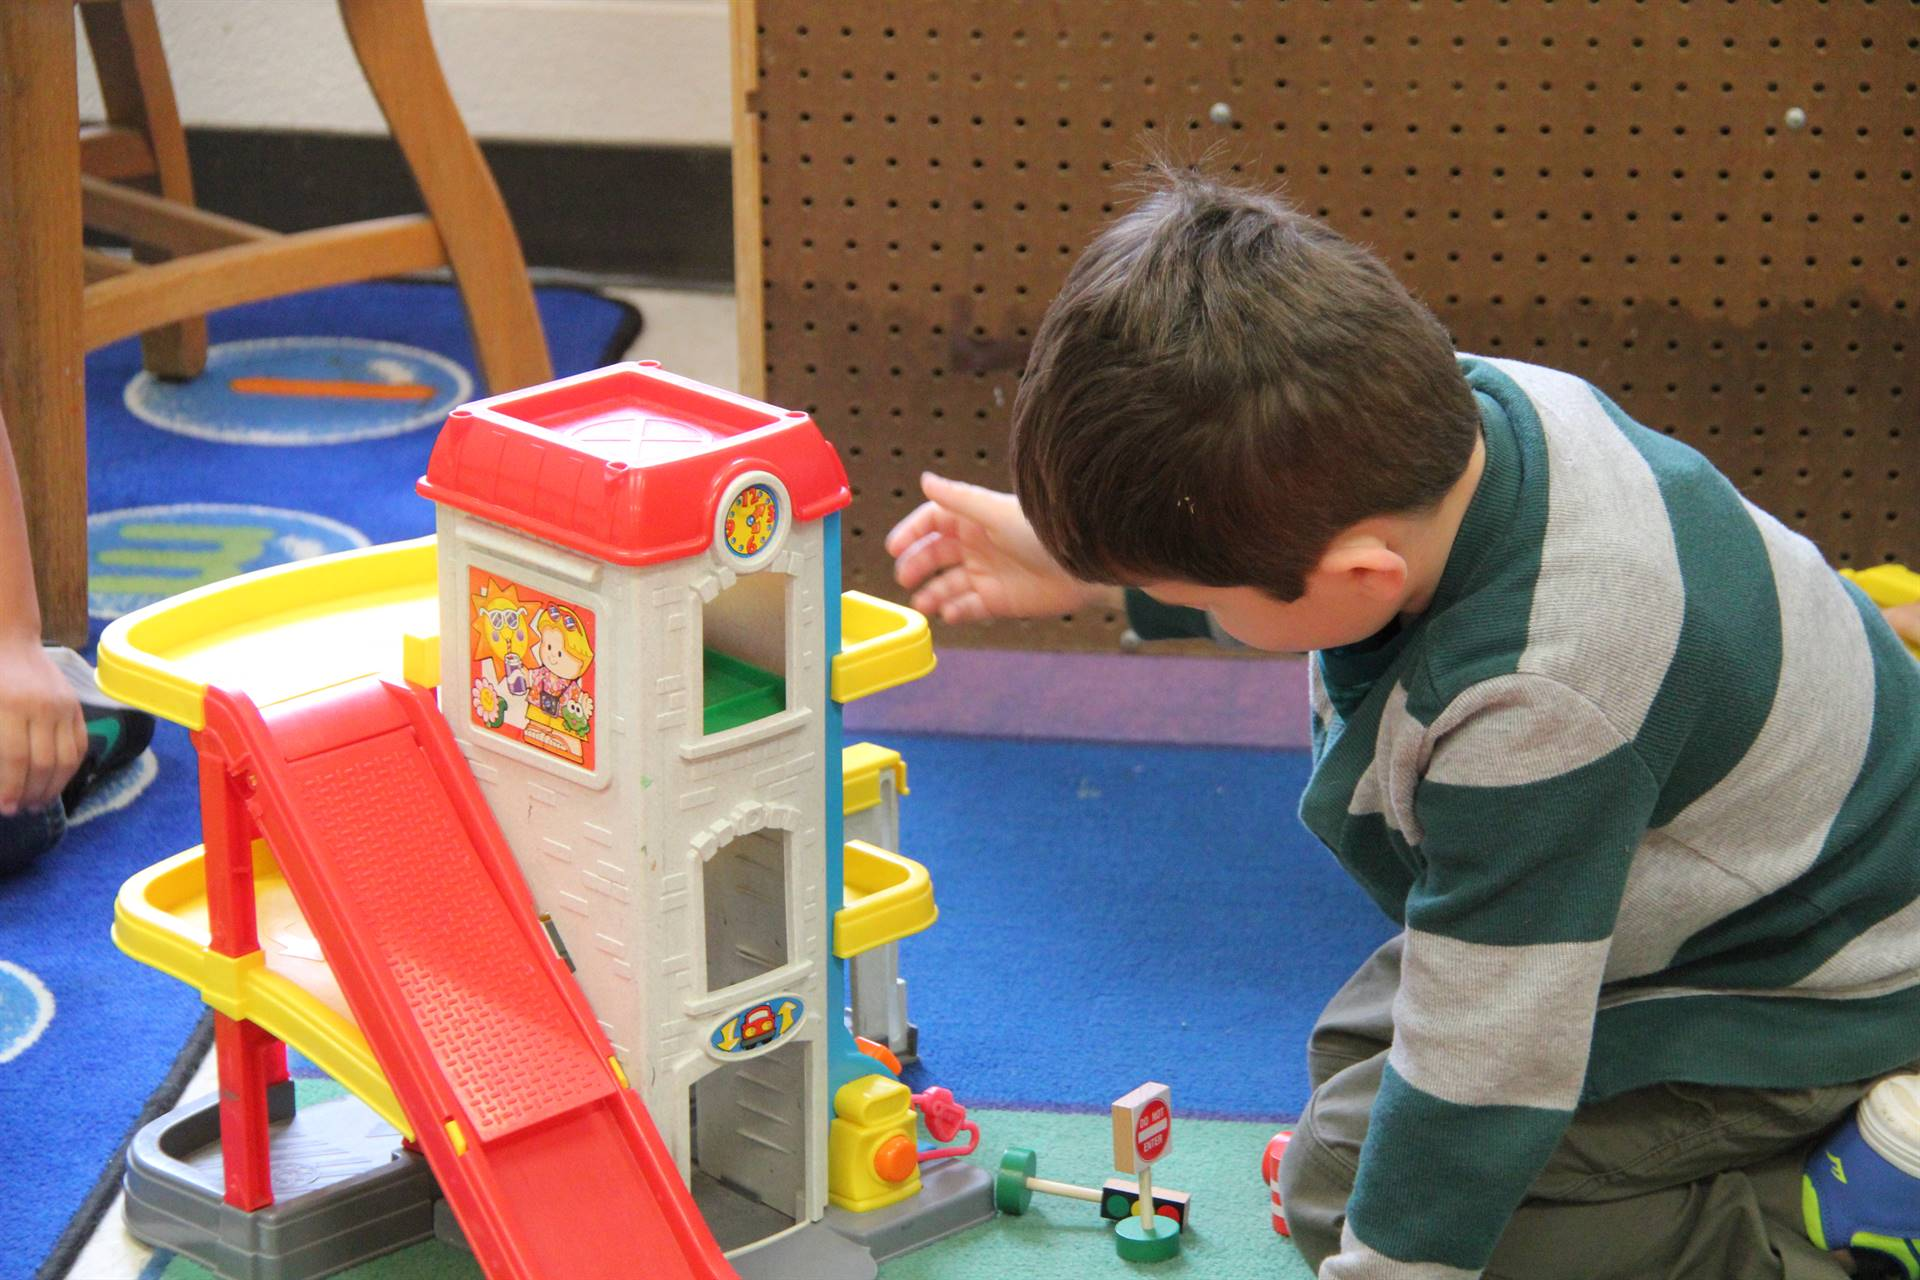 boy plays with toy garage